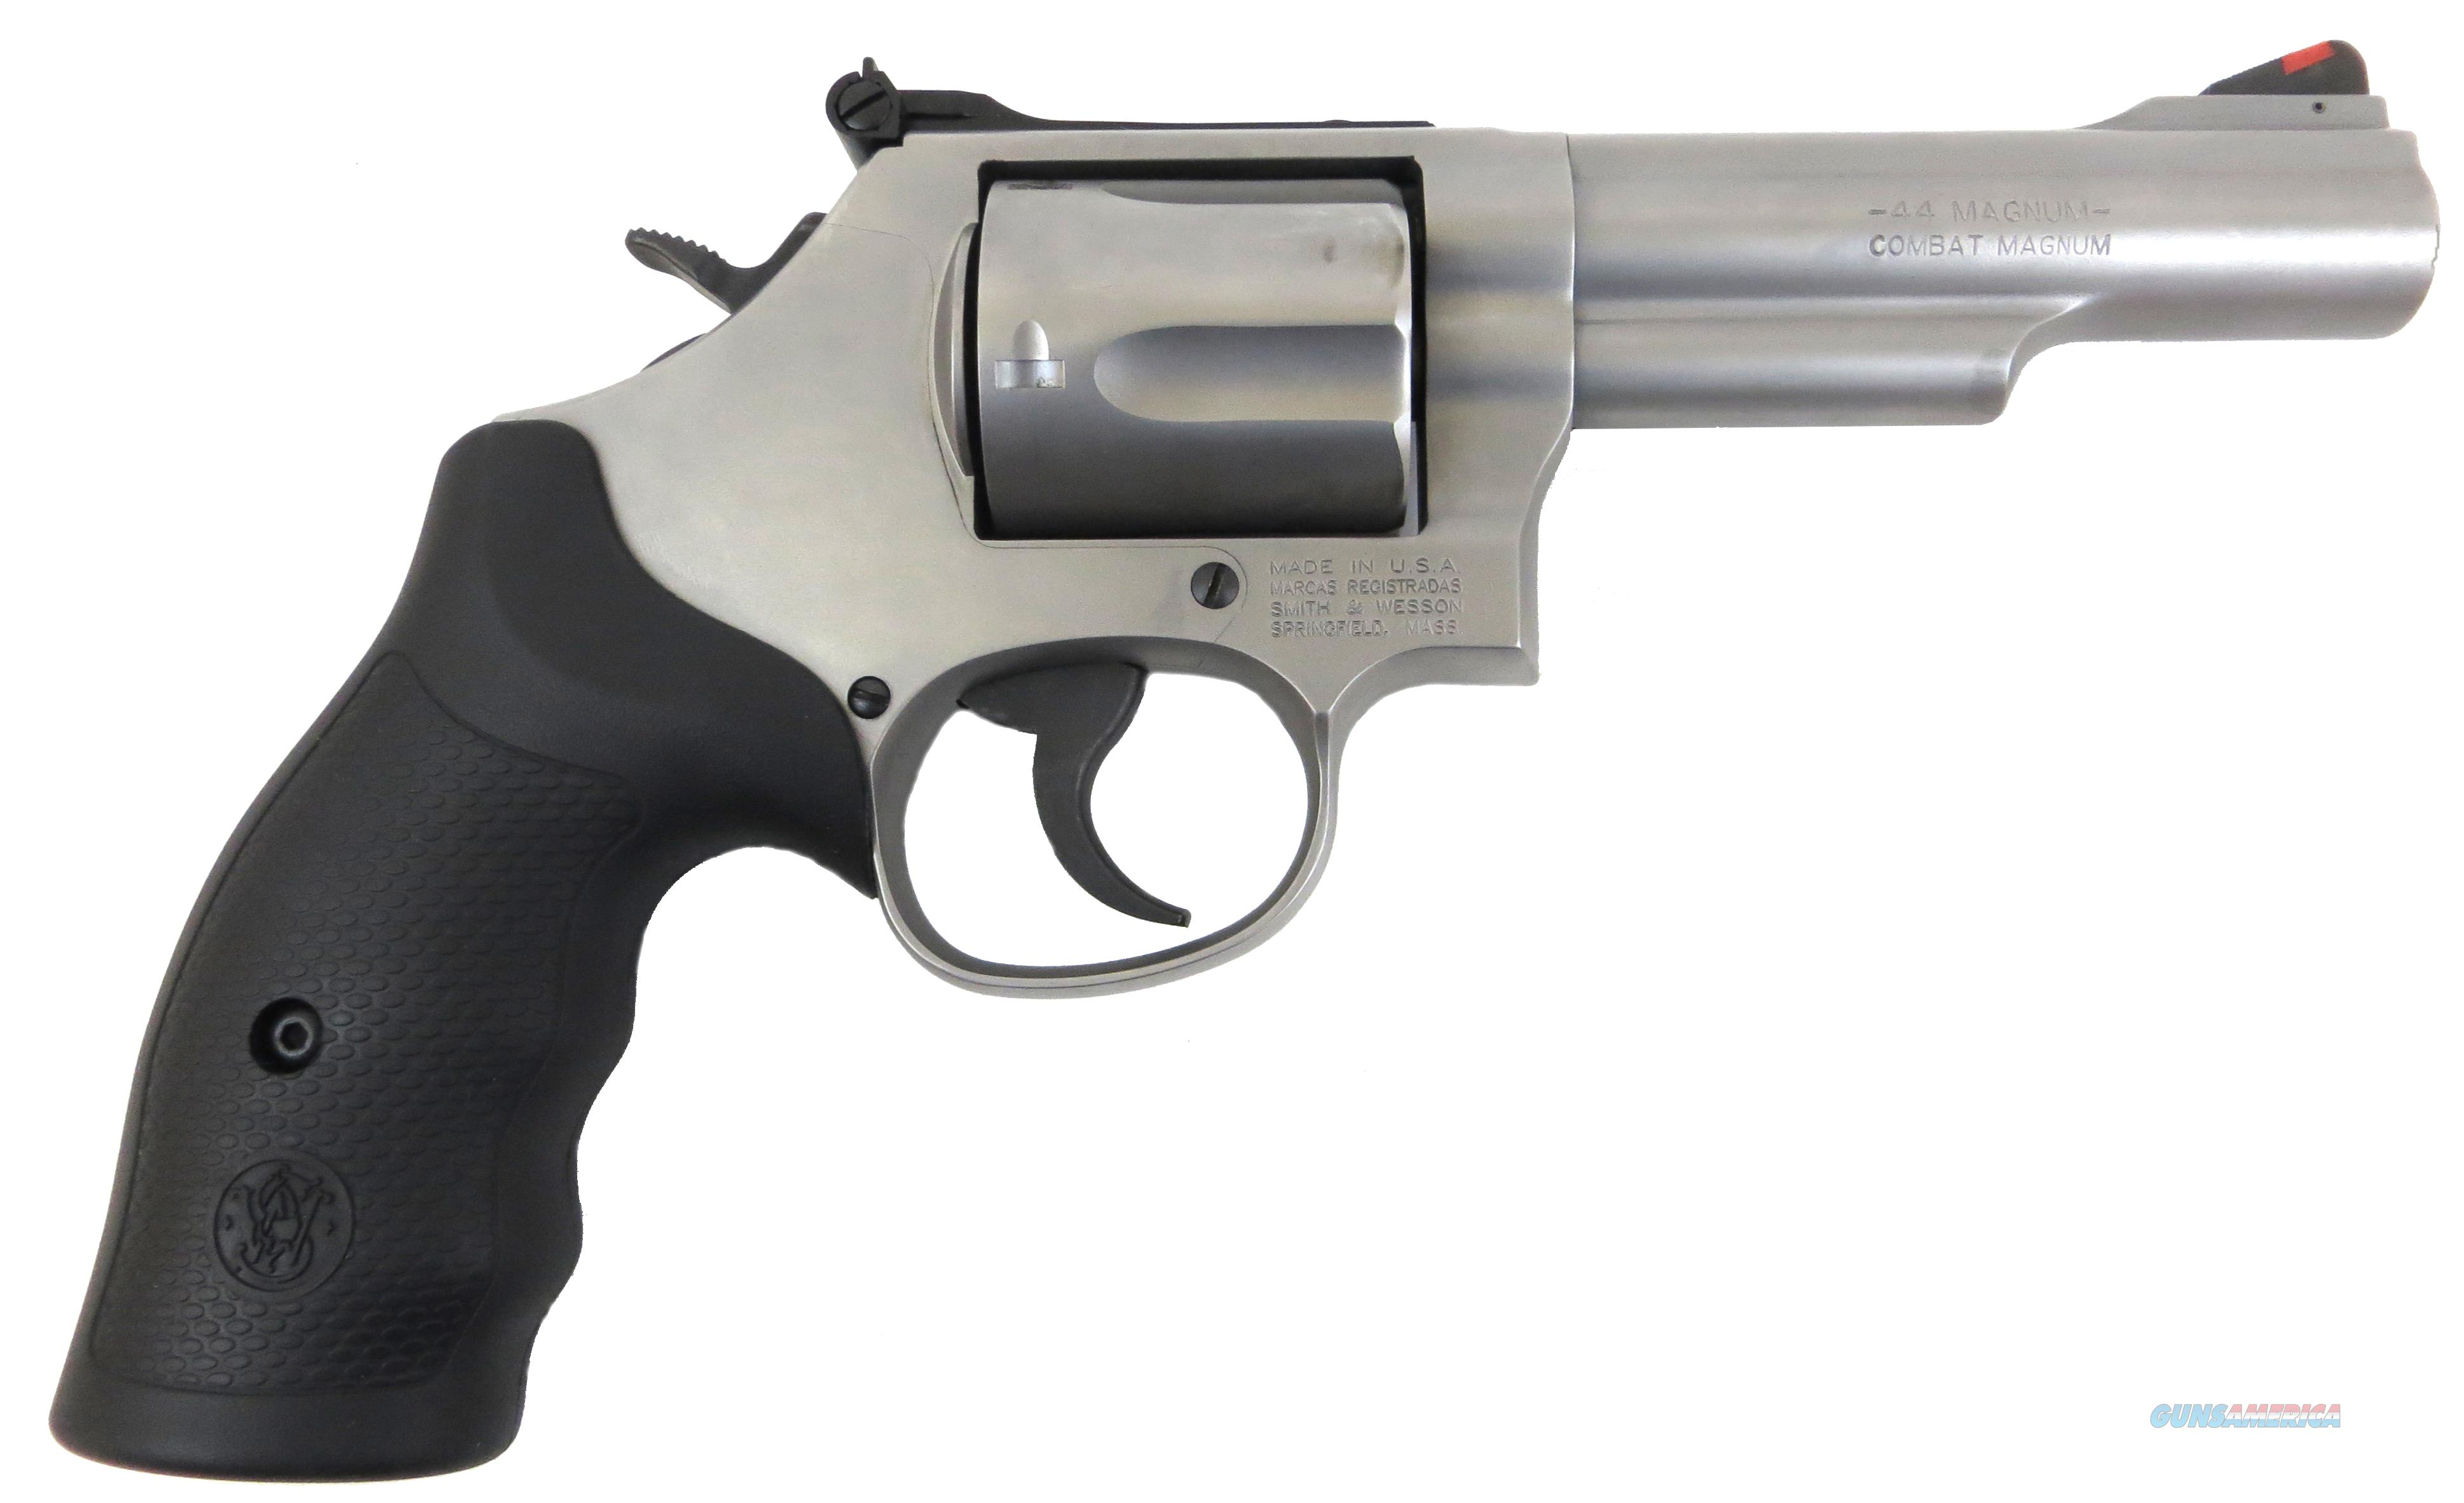 "SMITH & WESSON MODEL 69 44 MAGNUM 4"" L FRAME STAINLESS NEW IN BOX  Guns > Pistols > Smith & Wesson Revolvers > Full Frame Revolver"